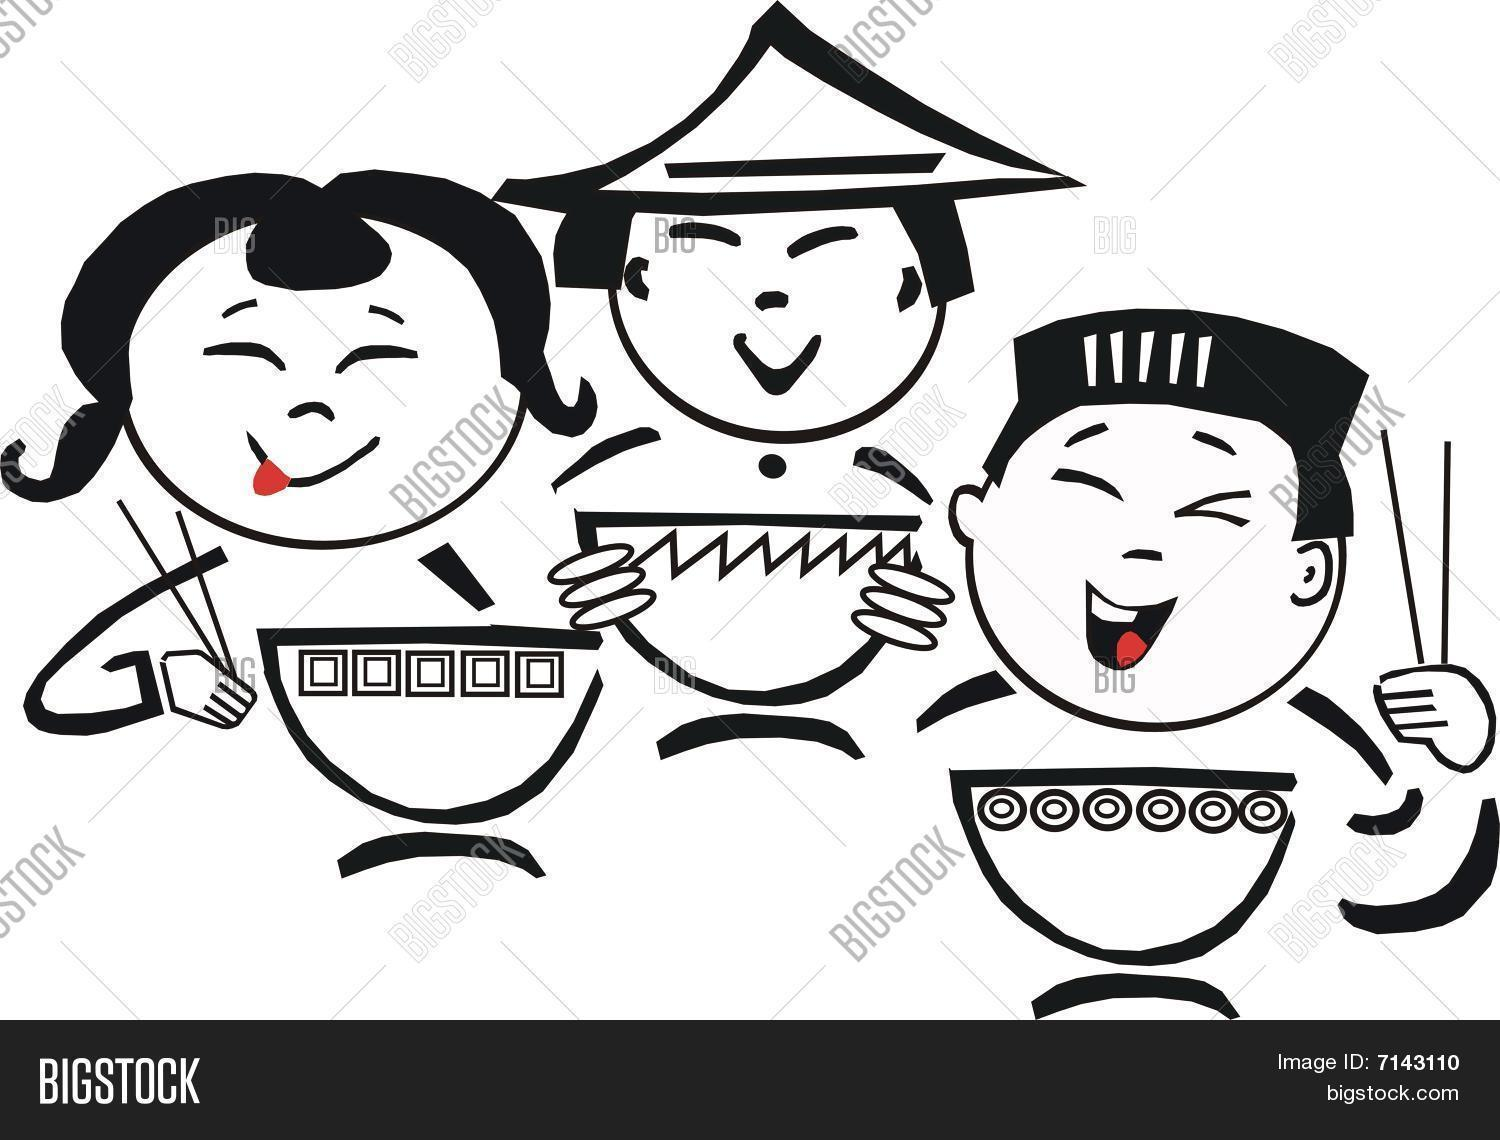 Bilder Cartoon Küche Asiatische Küche Cartoon Stock Vektorgrafiken